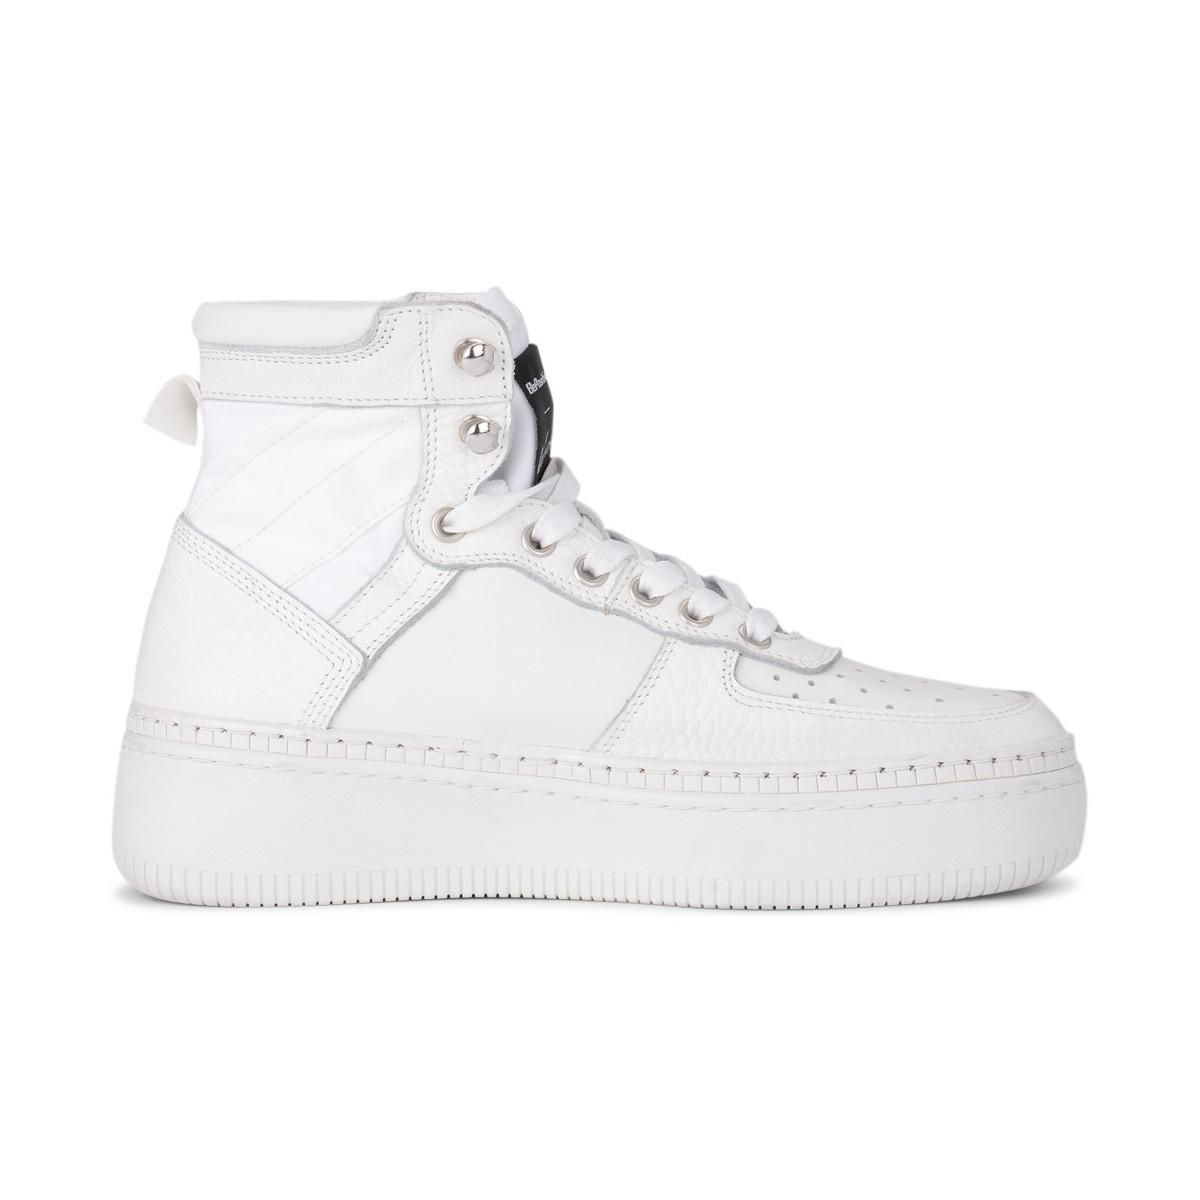 Be Positive Bepositive Track01 White Leather And Canvas High Sneaker Women's Shoes (high-top Trainers) In White